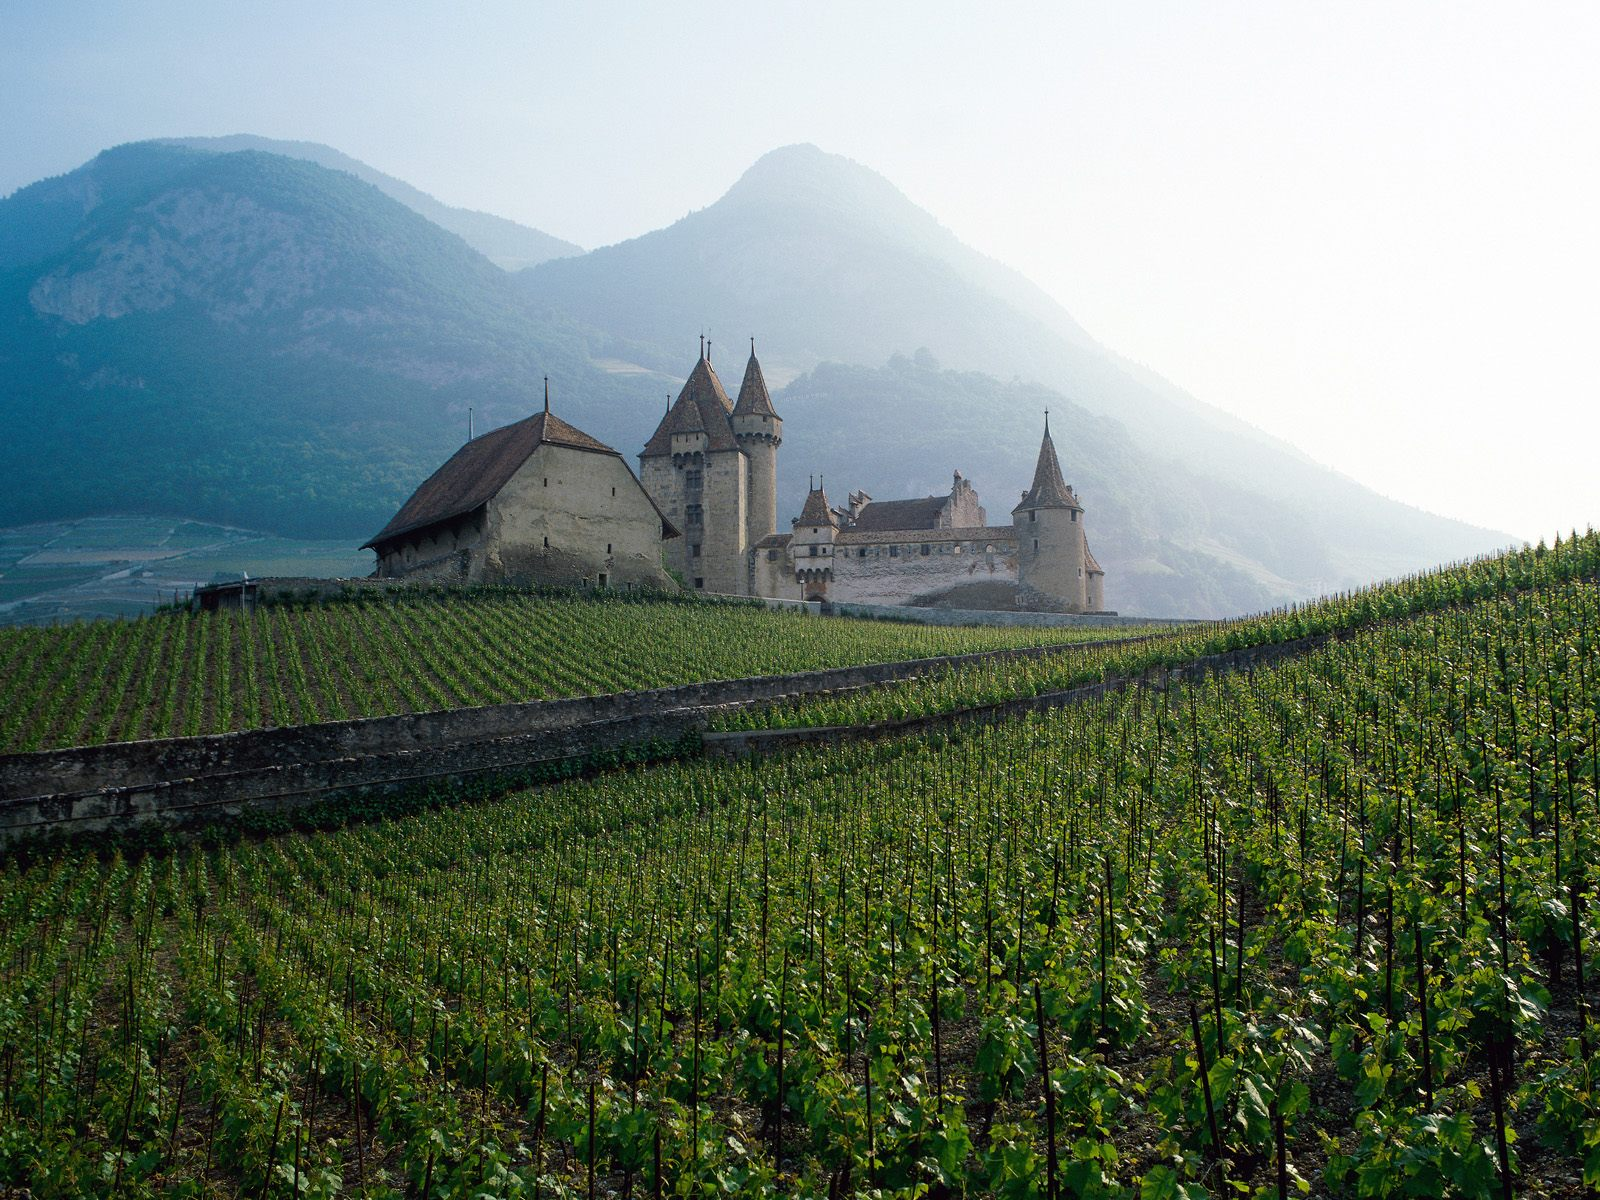 World visits switzerland culture and tourist attractions - House in the mountains ...